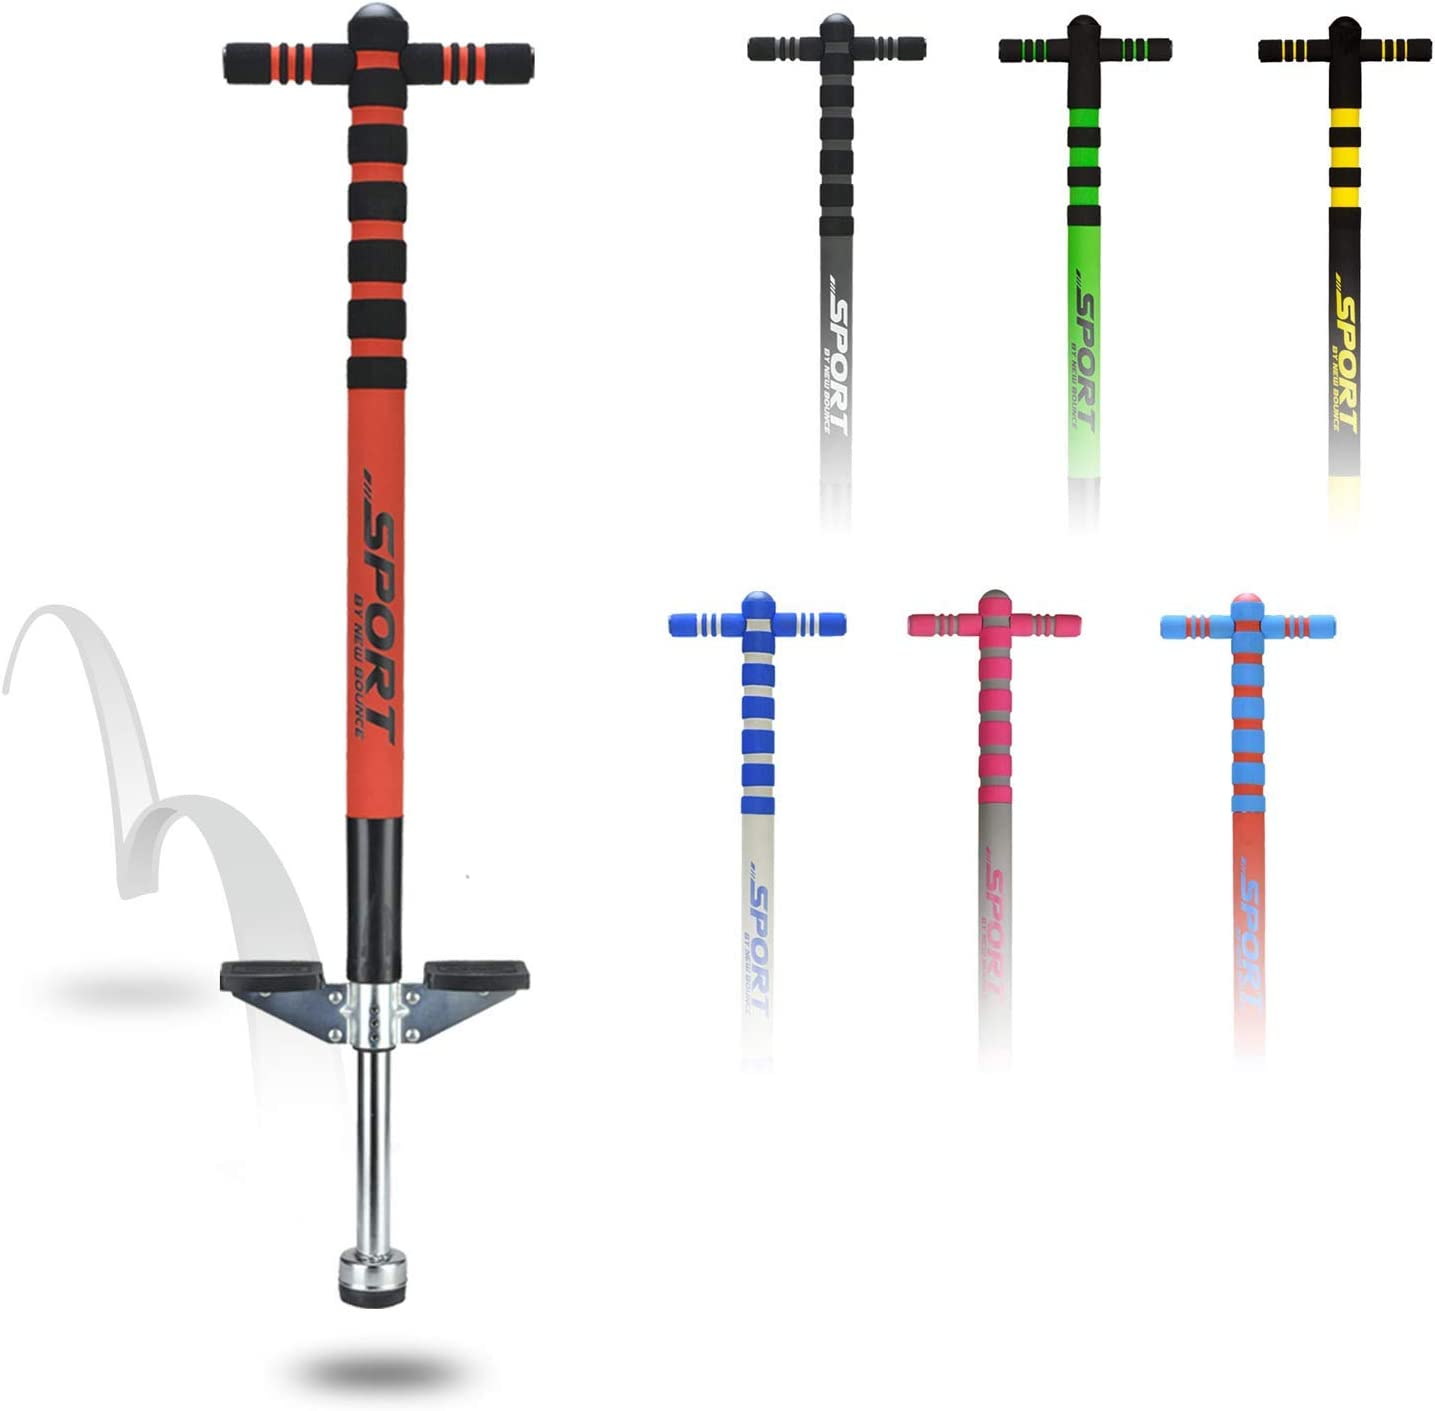 New Bounce Pogo Stick for Kids - Pogo Sticks for Ages 5 and Up, 40 to 80 Lbs - Sport Edition, Quality, Easy Grip, PogoStick for Hours of Wholesome Fun.